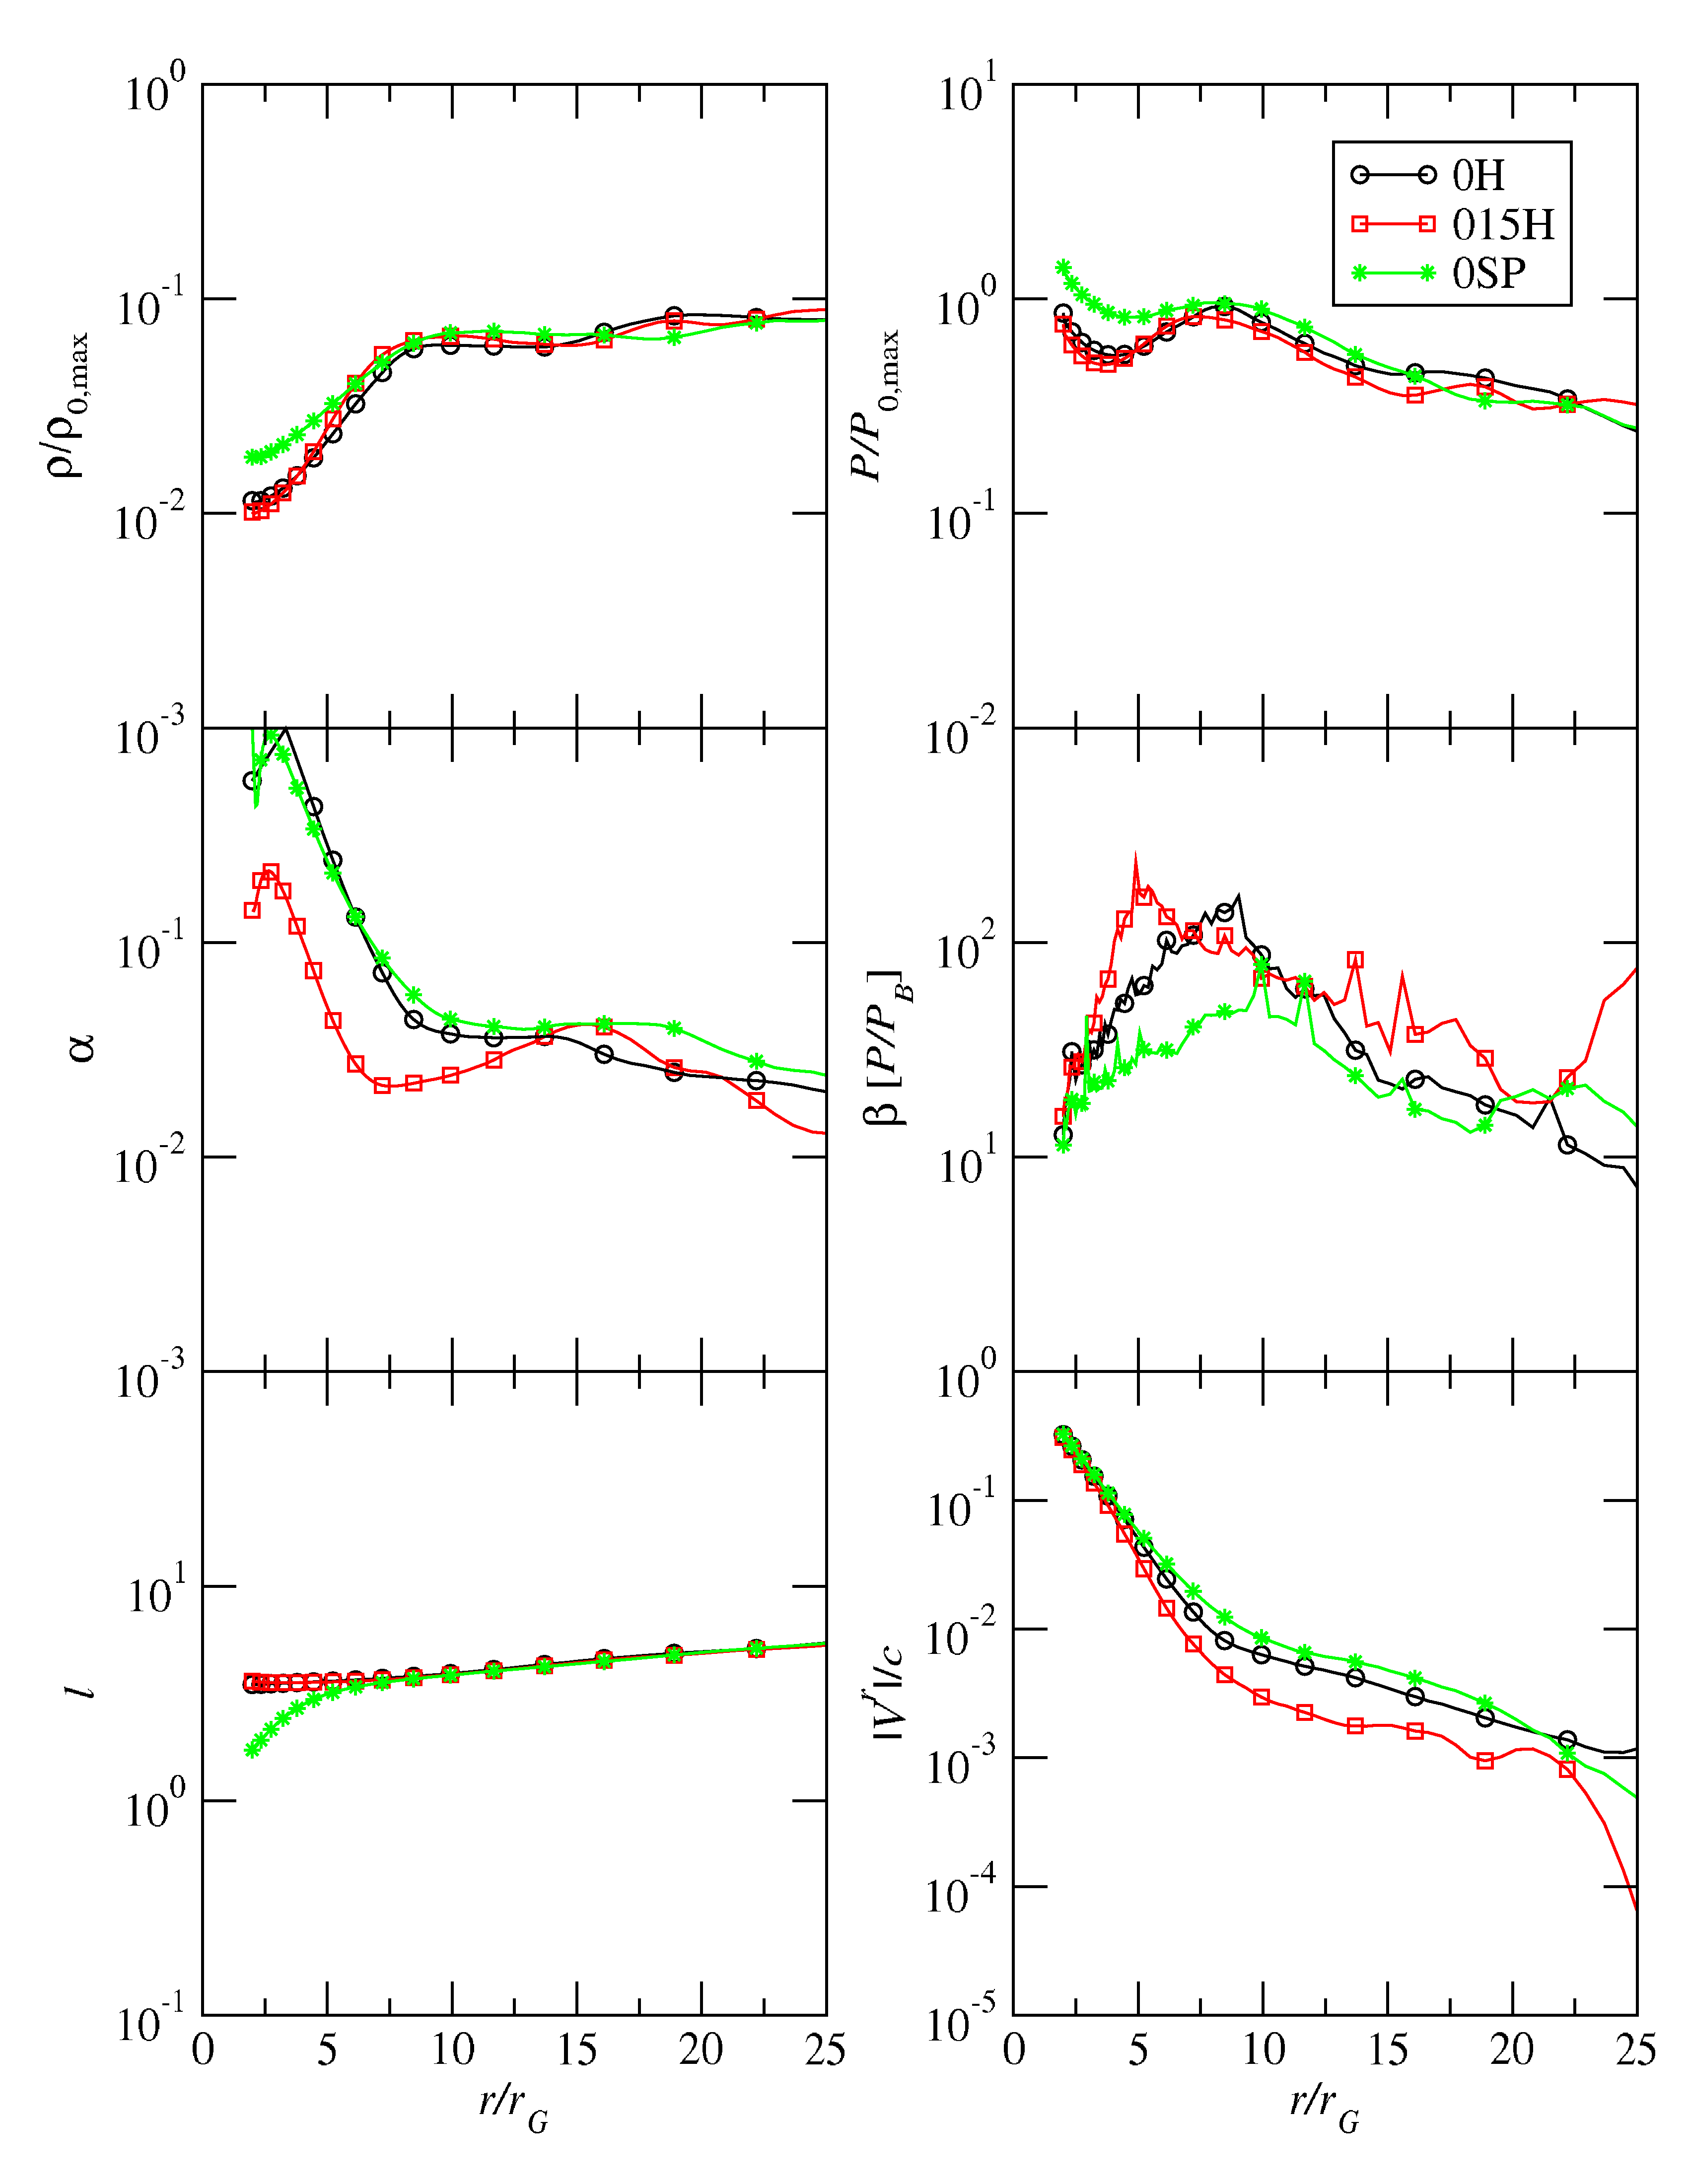 Main disk properties plotted as a function of radius for simulations 0H, 015H, and 0SP. The data have been time-averaged over the final orbital period of each simulation (